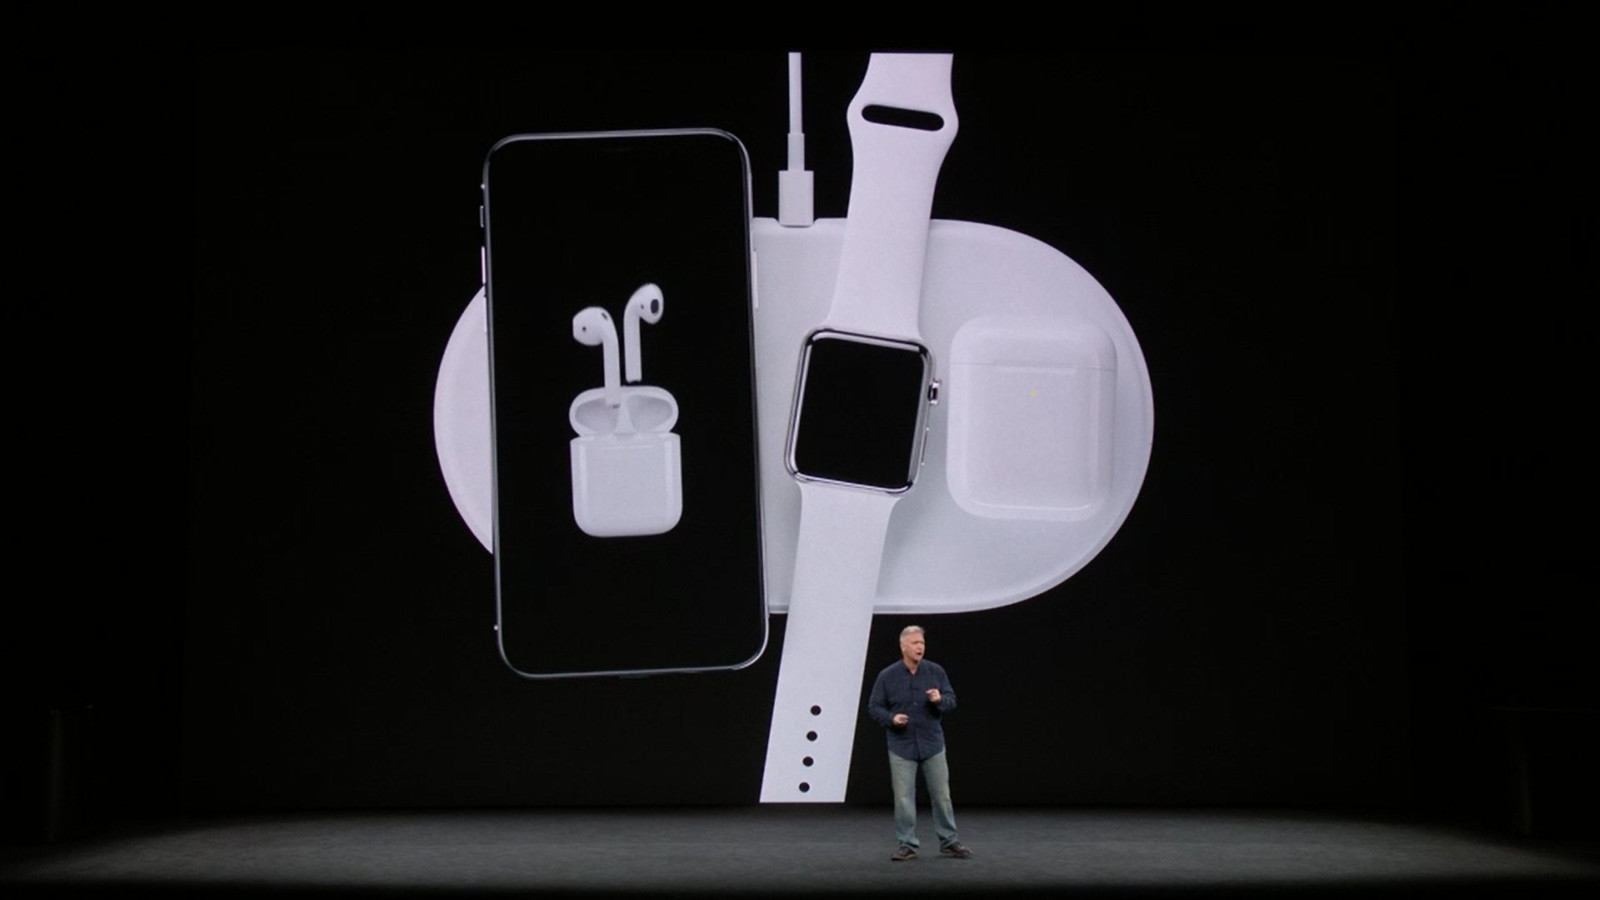 Apple's AirPower Wireless Charger Might Be Released In September